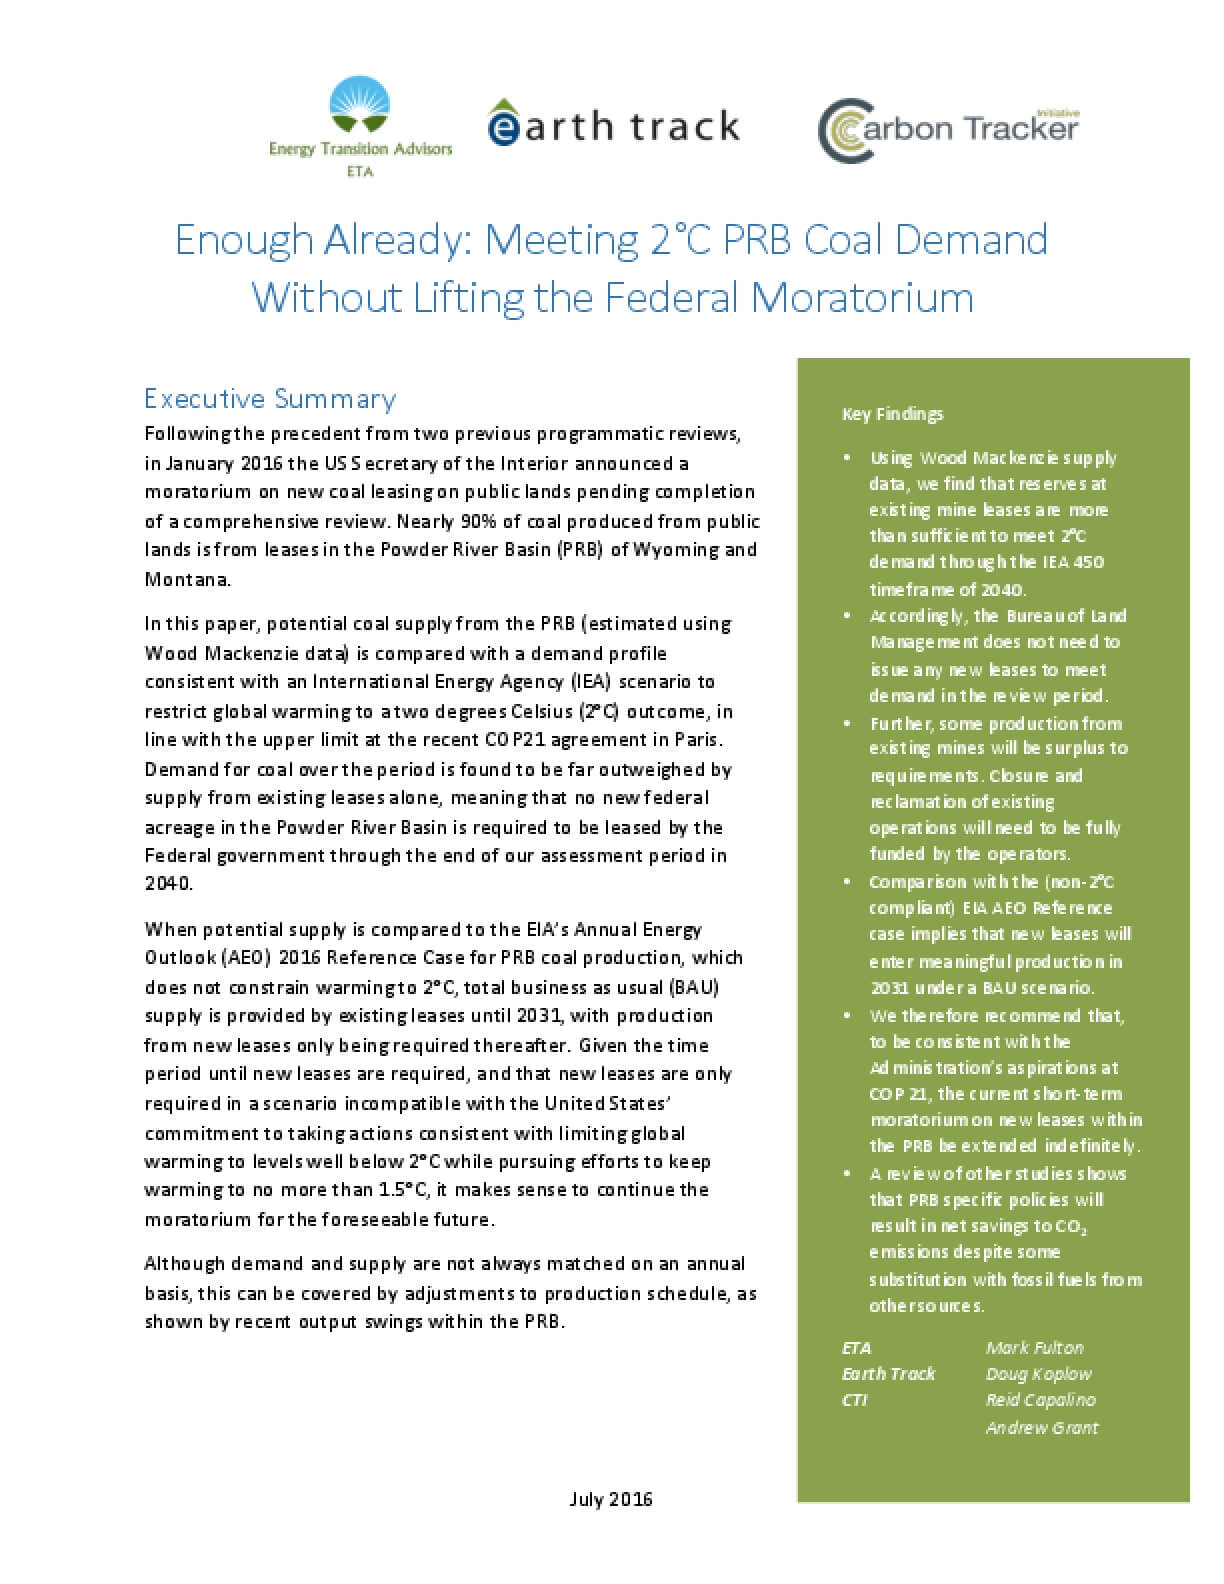 Enough Already: Meeting 2°C Powder River Basin Coal Demand Without Lifting the Federal Moratorium